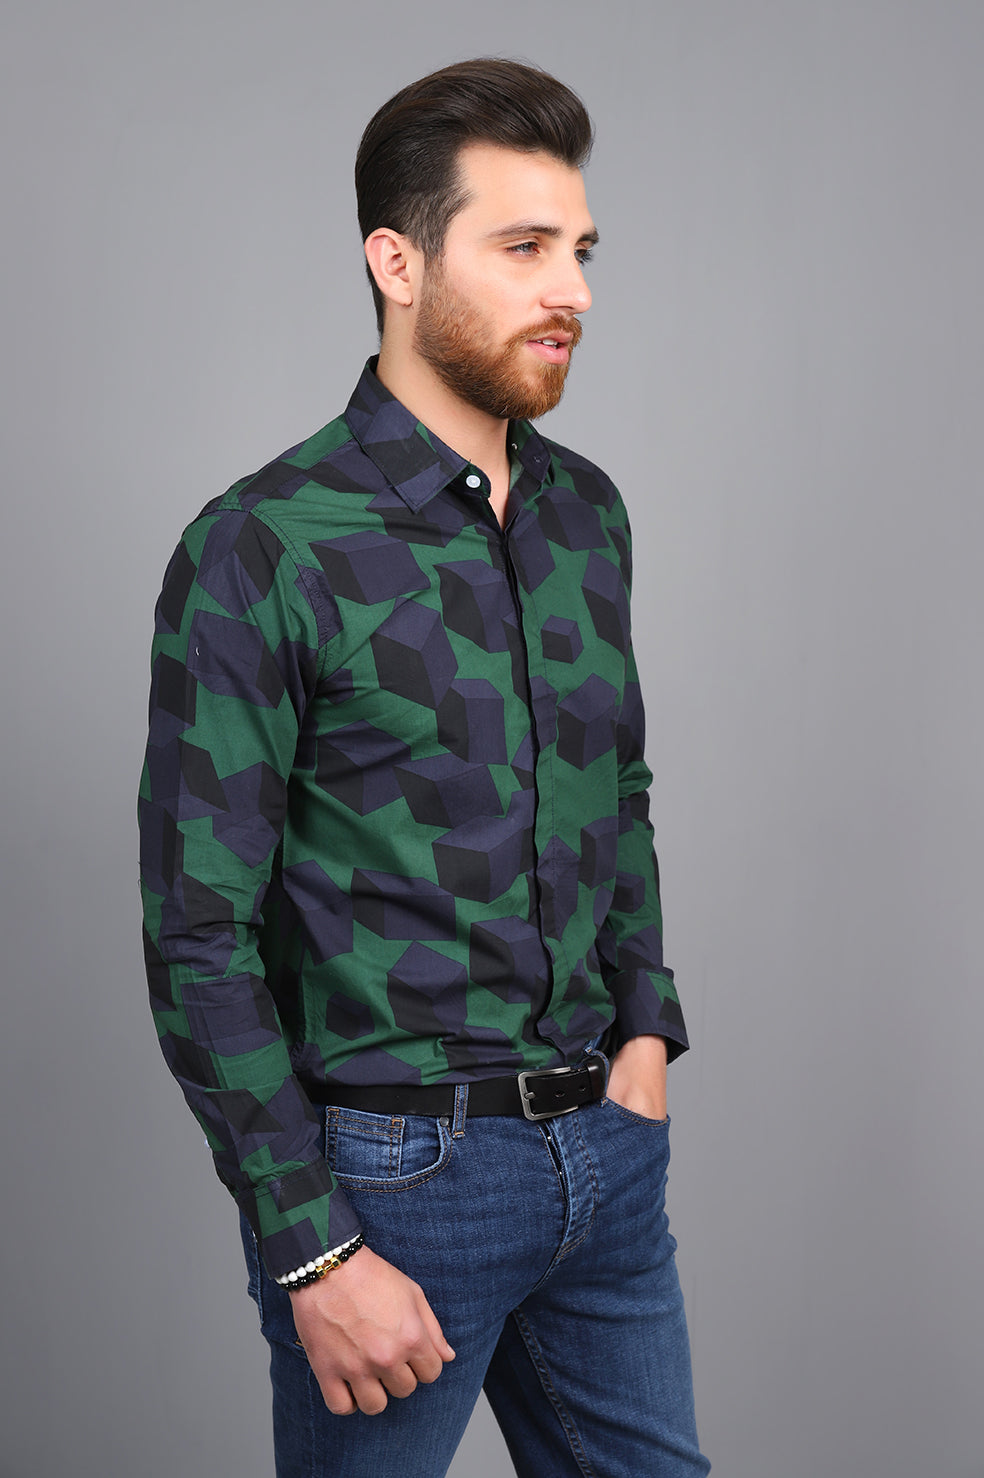 CUBIC PRINTED SHIRT-GREEN-NAVY